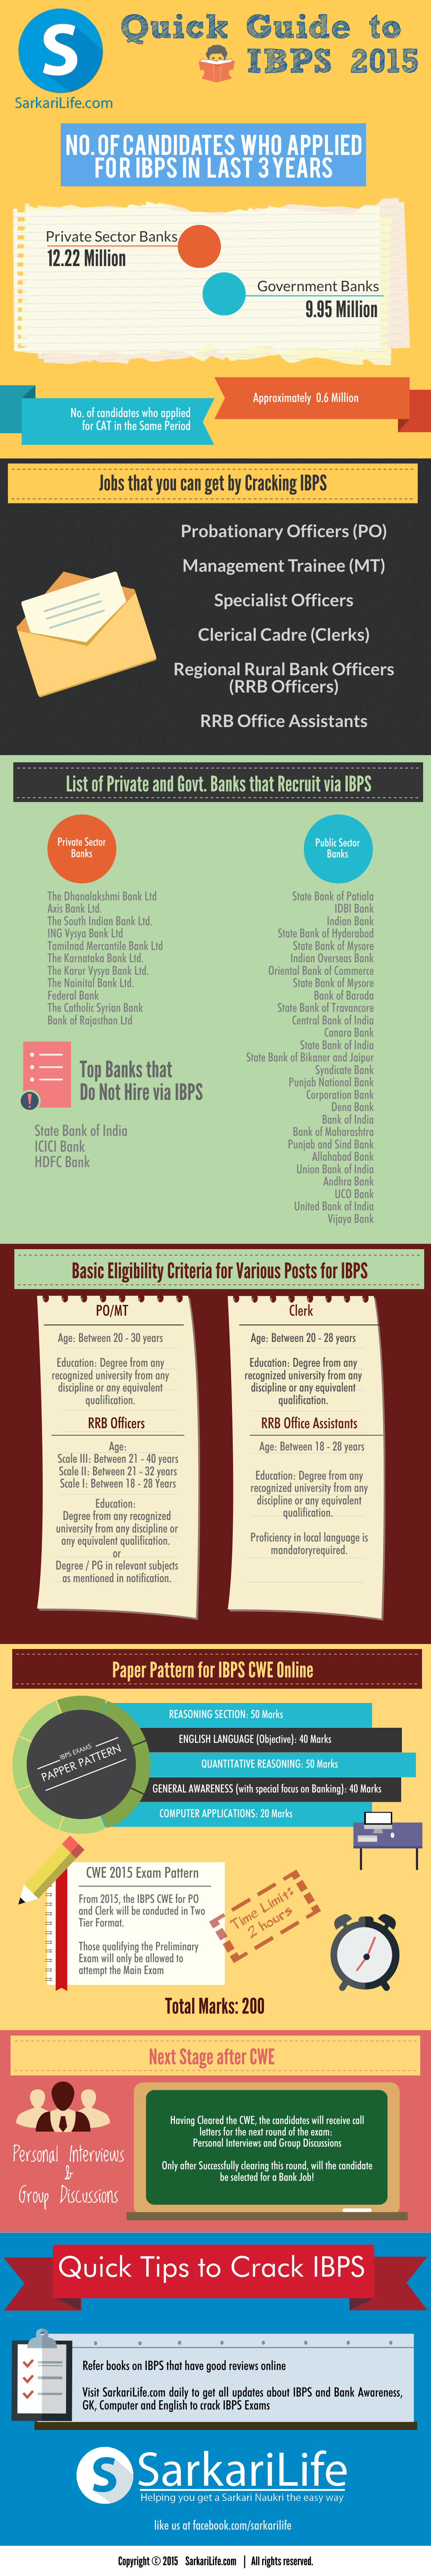 visual-guide-to-ibps-2015